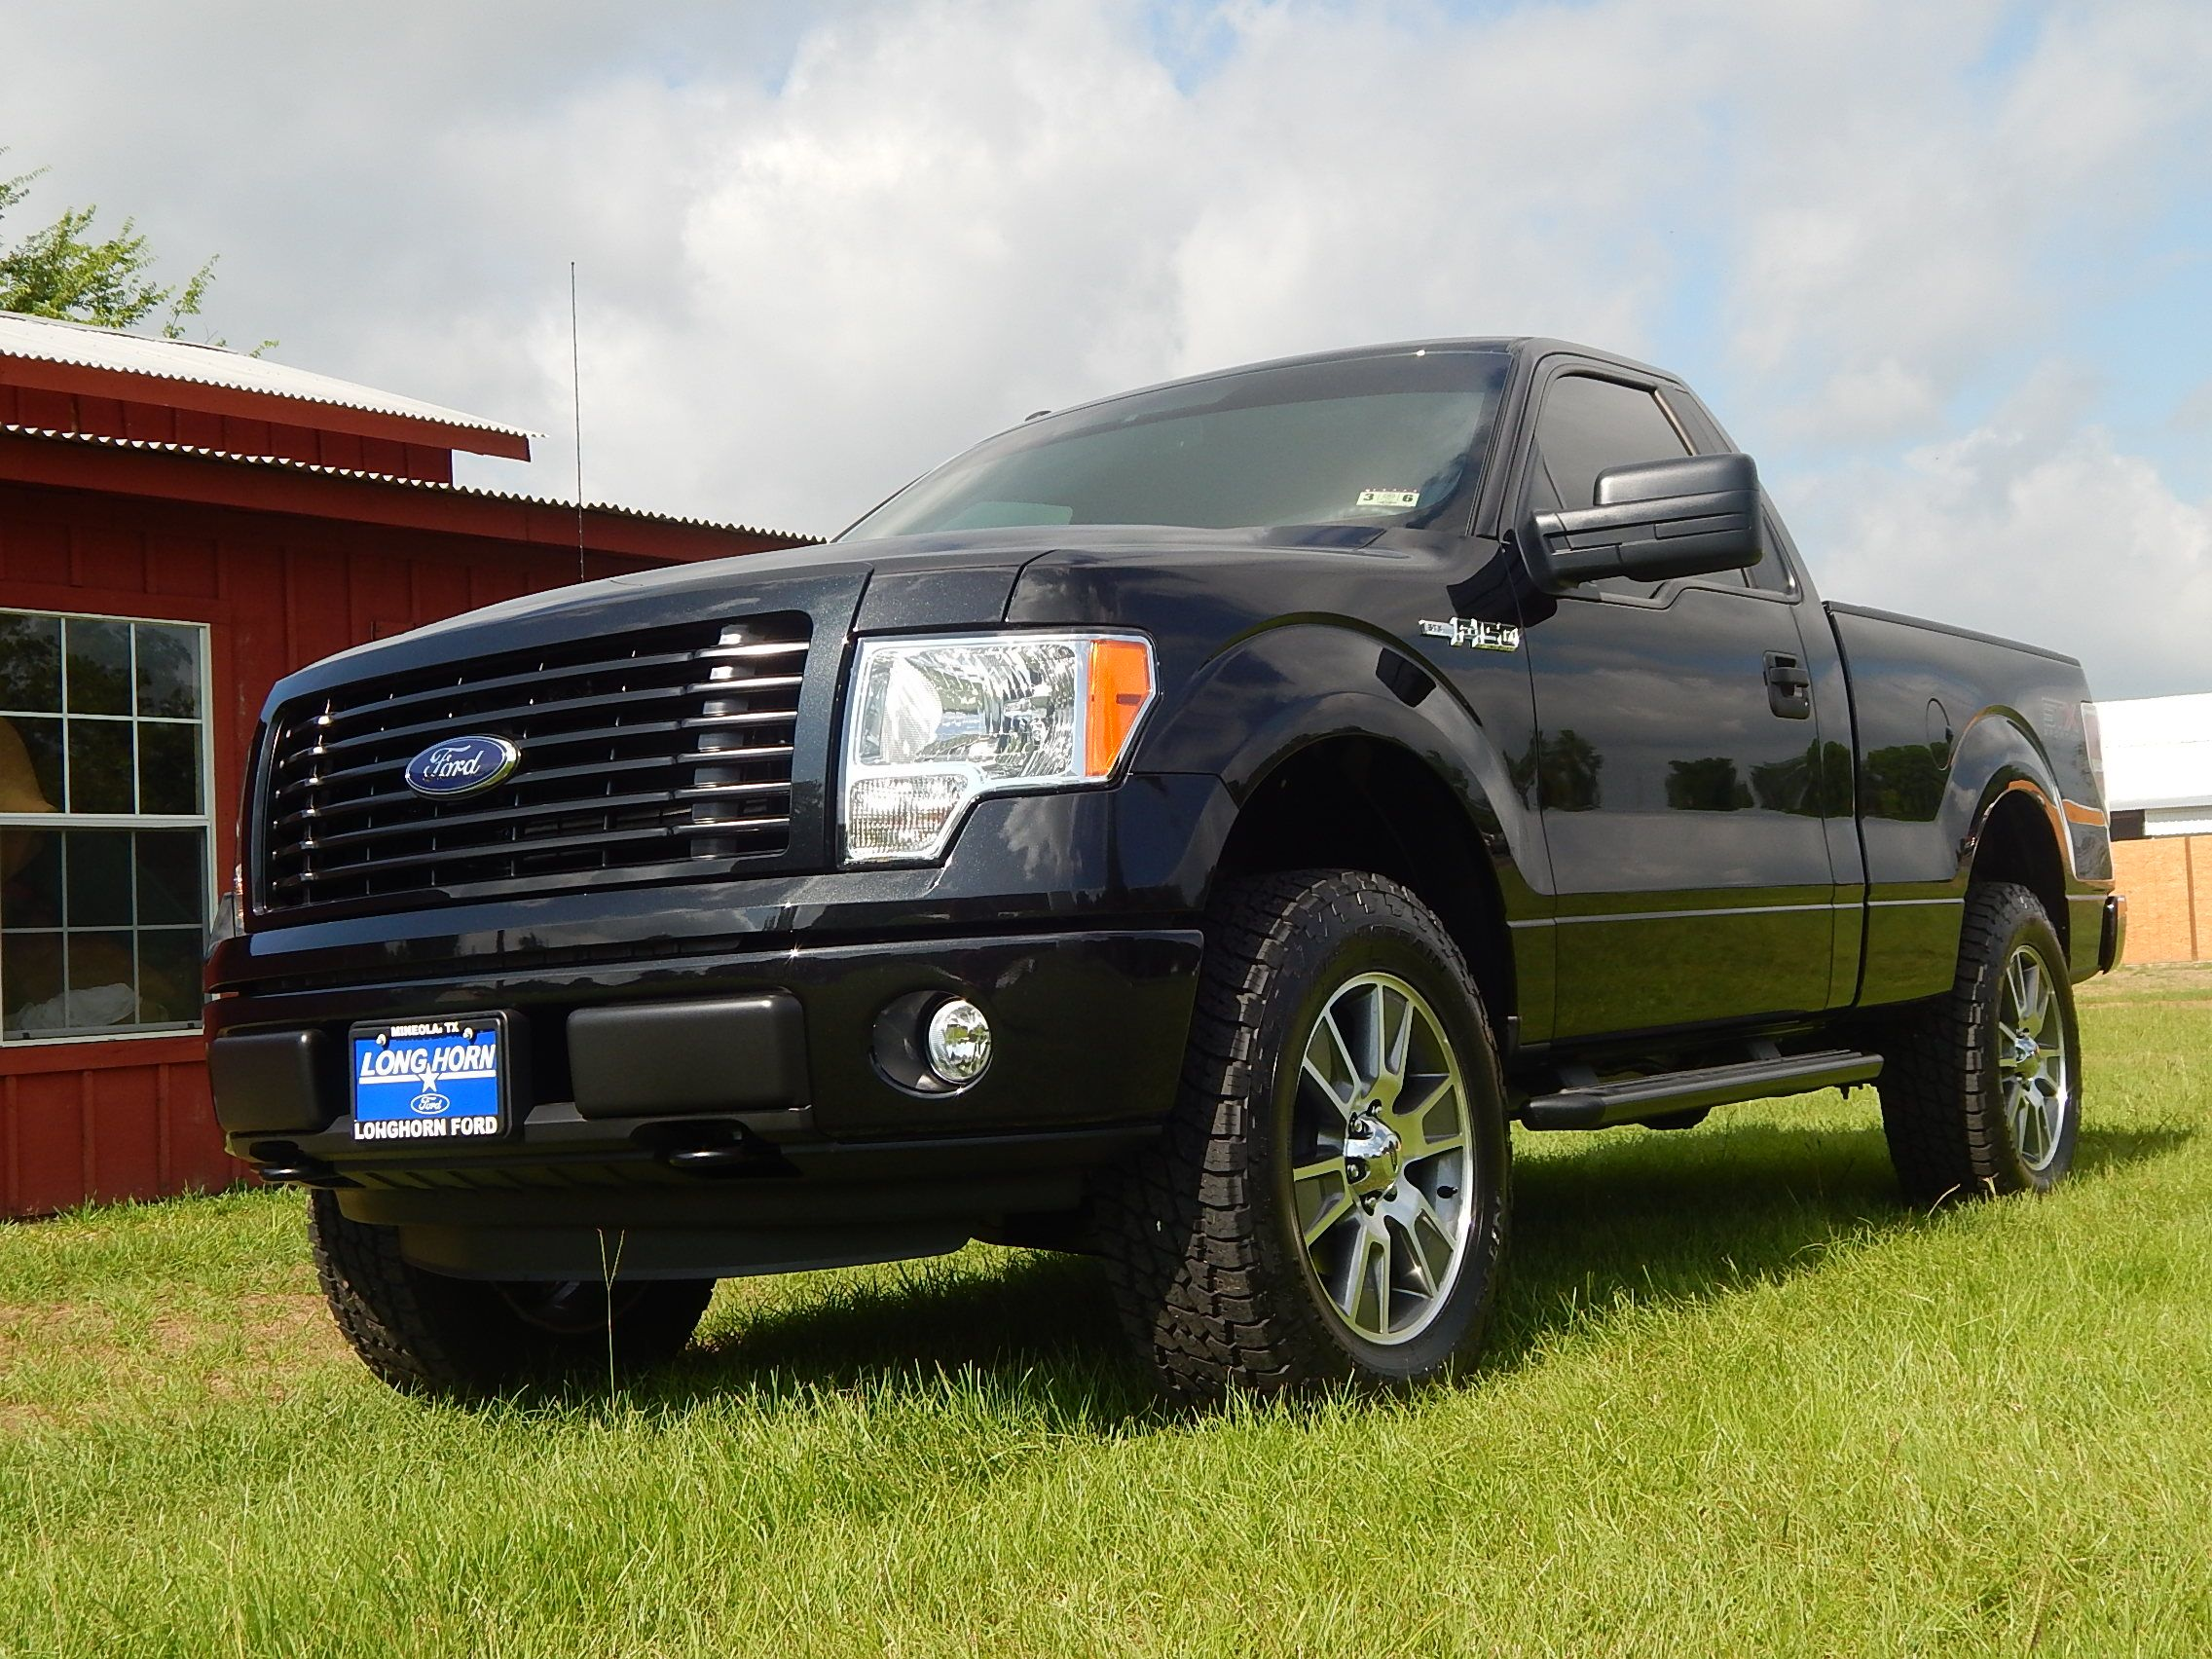 Asa Timm Std likewise Ford F Custom Short Bed Reg Cab furthermore Fa A C B moreover Ford F Eddie Bauer Standard Cab Pick Up Truck Gas F F Singlecab further Photojun Pm Zps E A. on ford f 250 single cab short bed